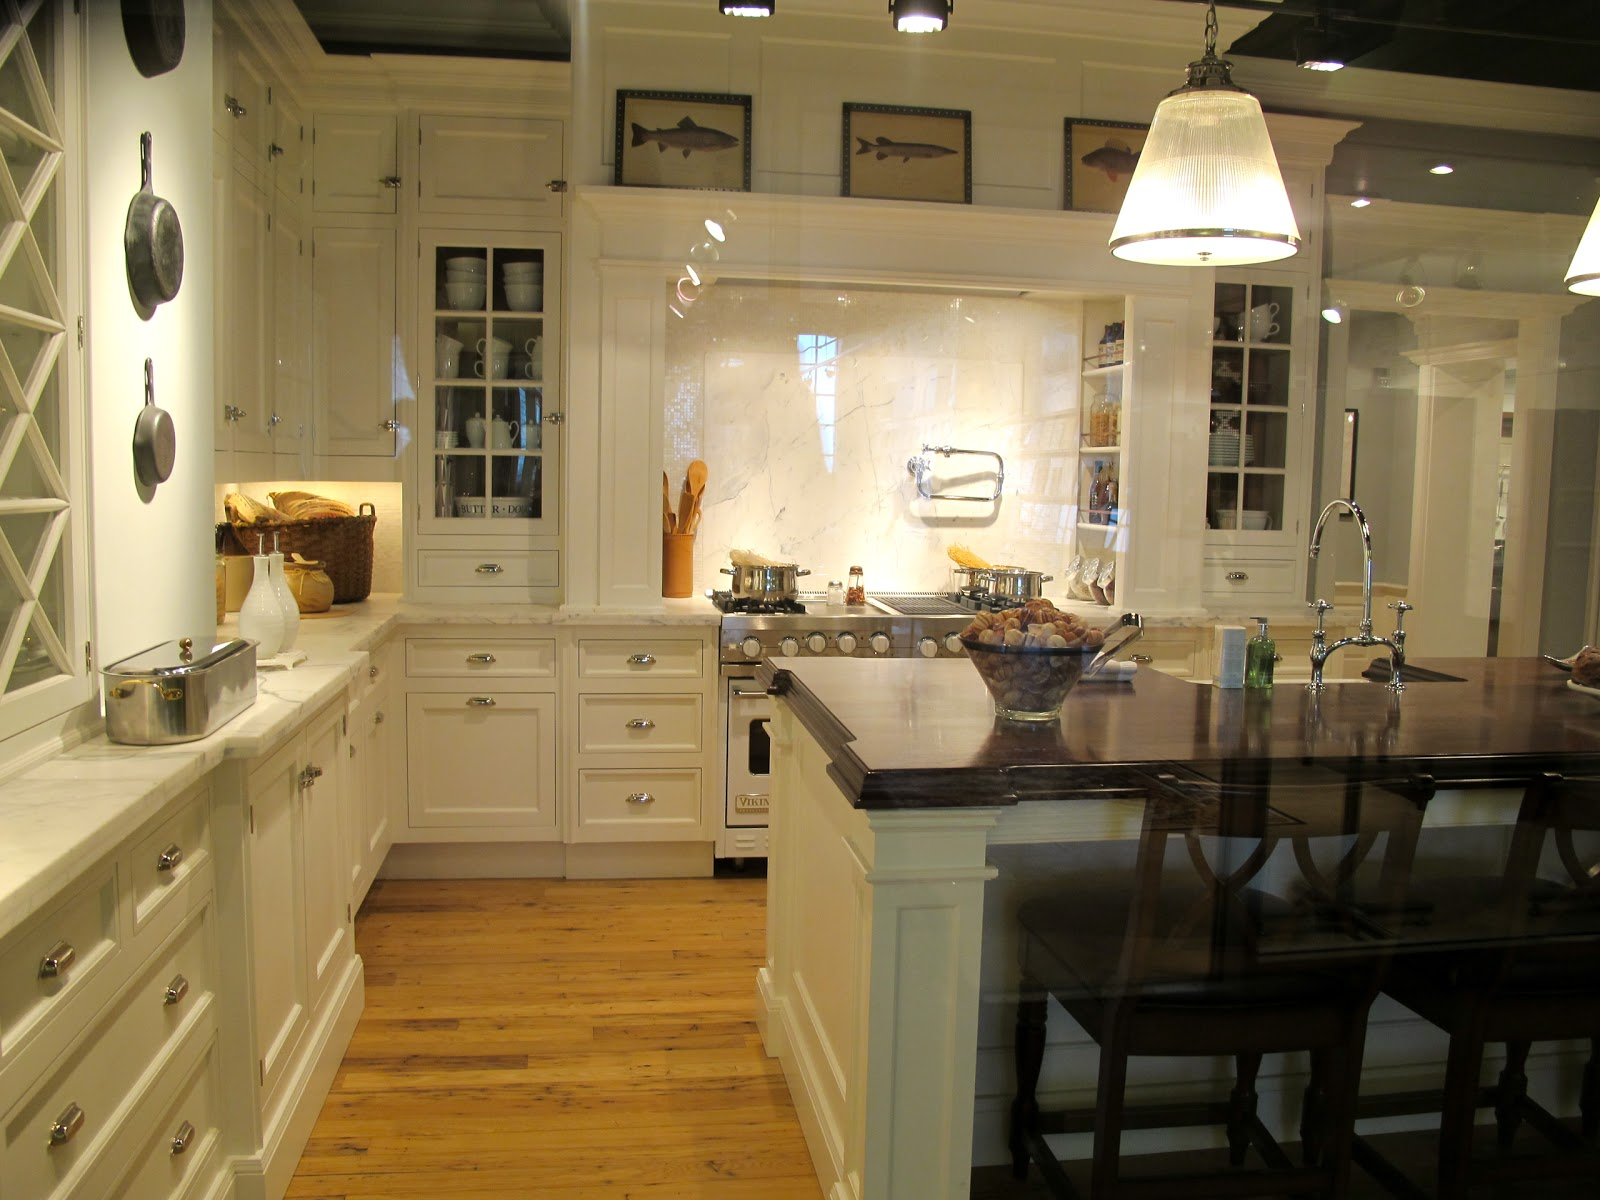 Jenny steffens hobick kitchens the most amazing for Kitchen remodel designs pictures